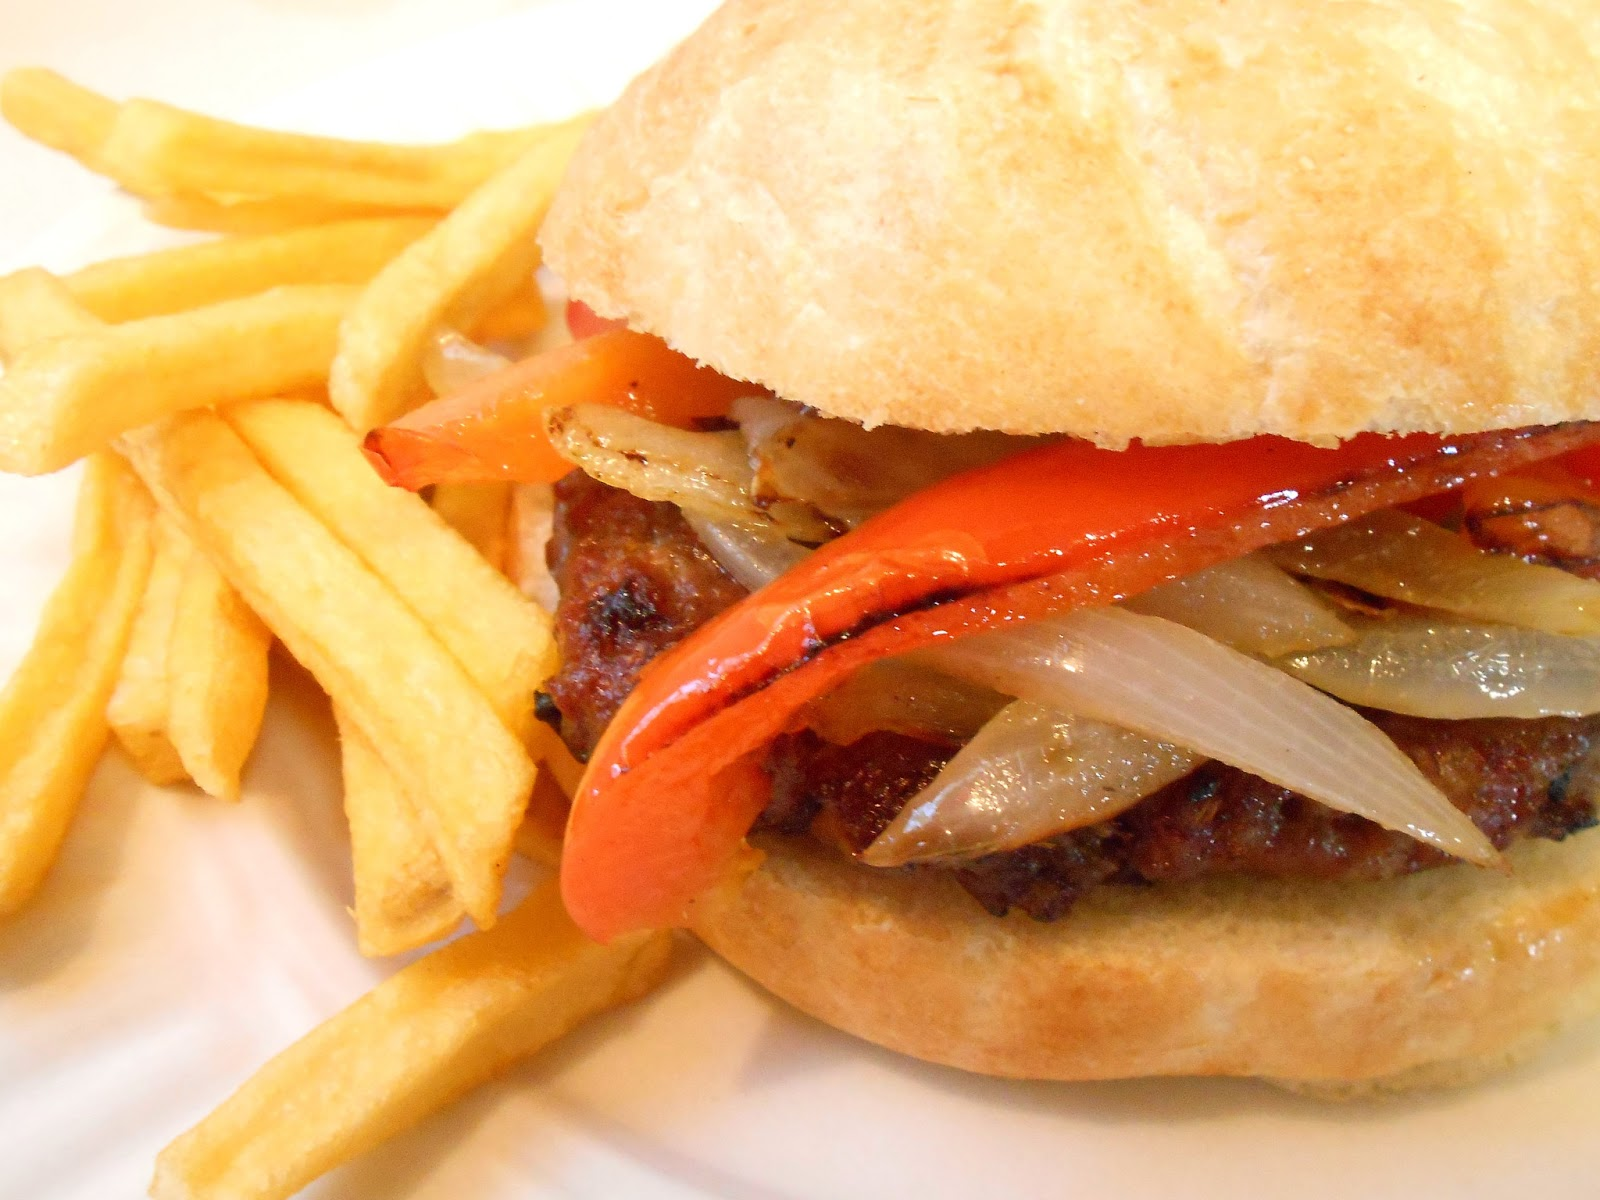 My Kind of Cooking: Grilled Italian Sausage Sandwiches